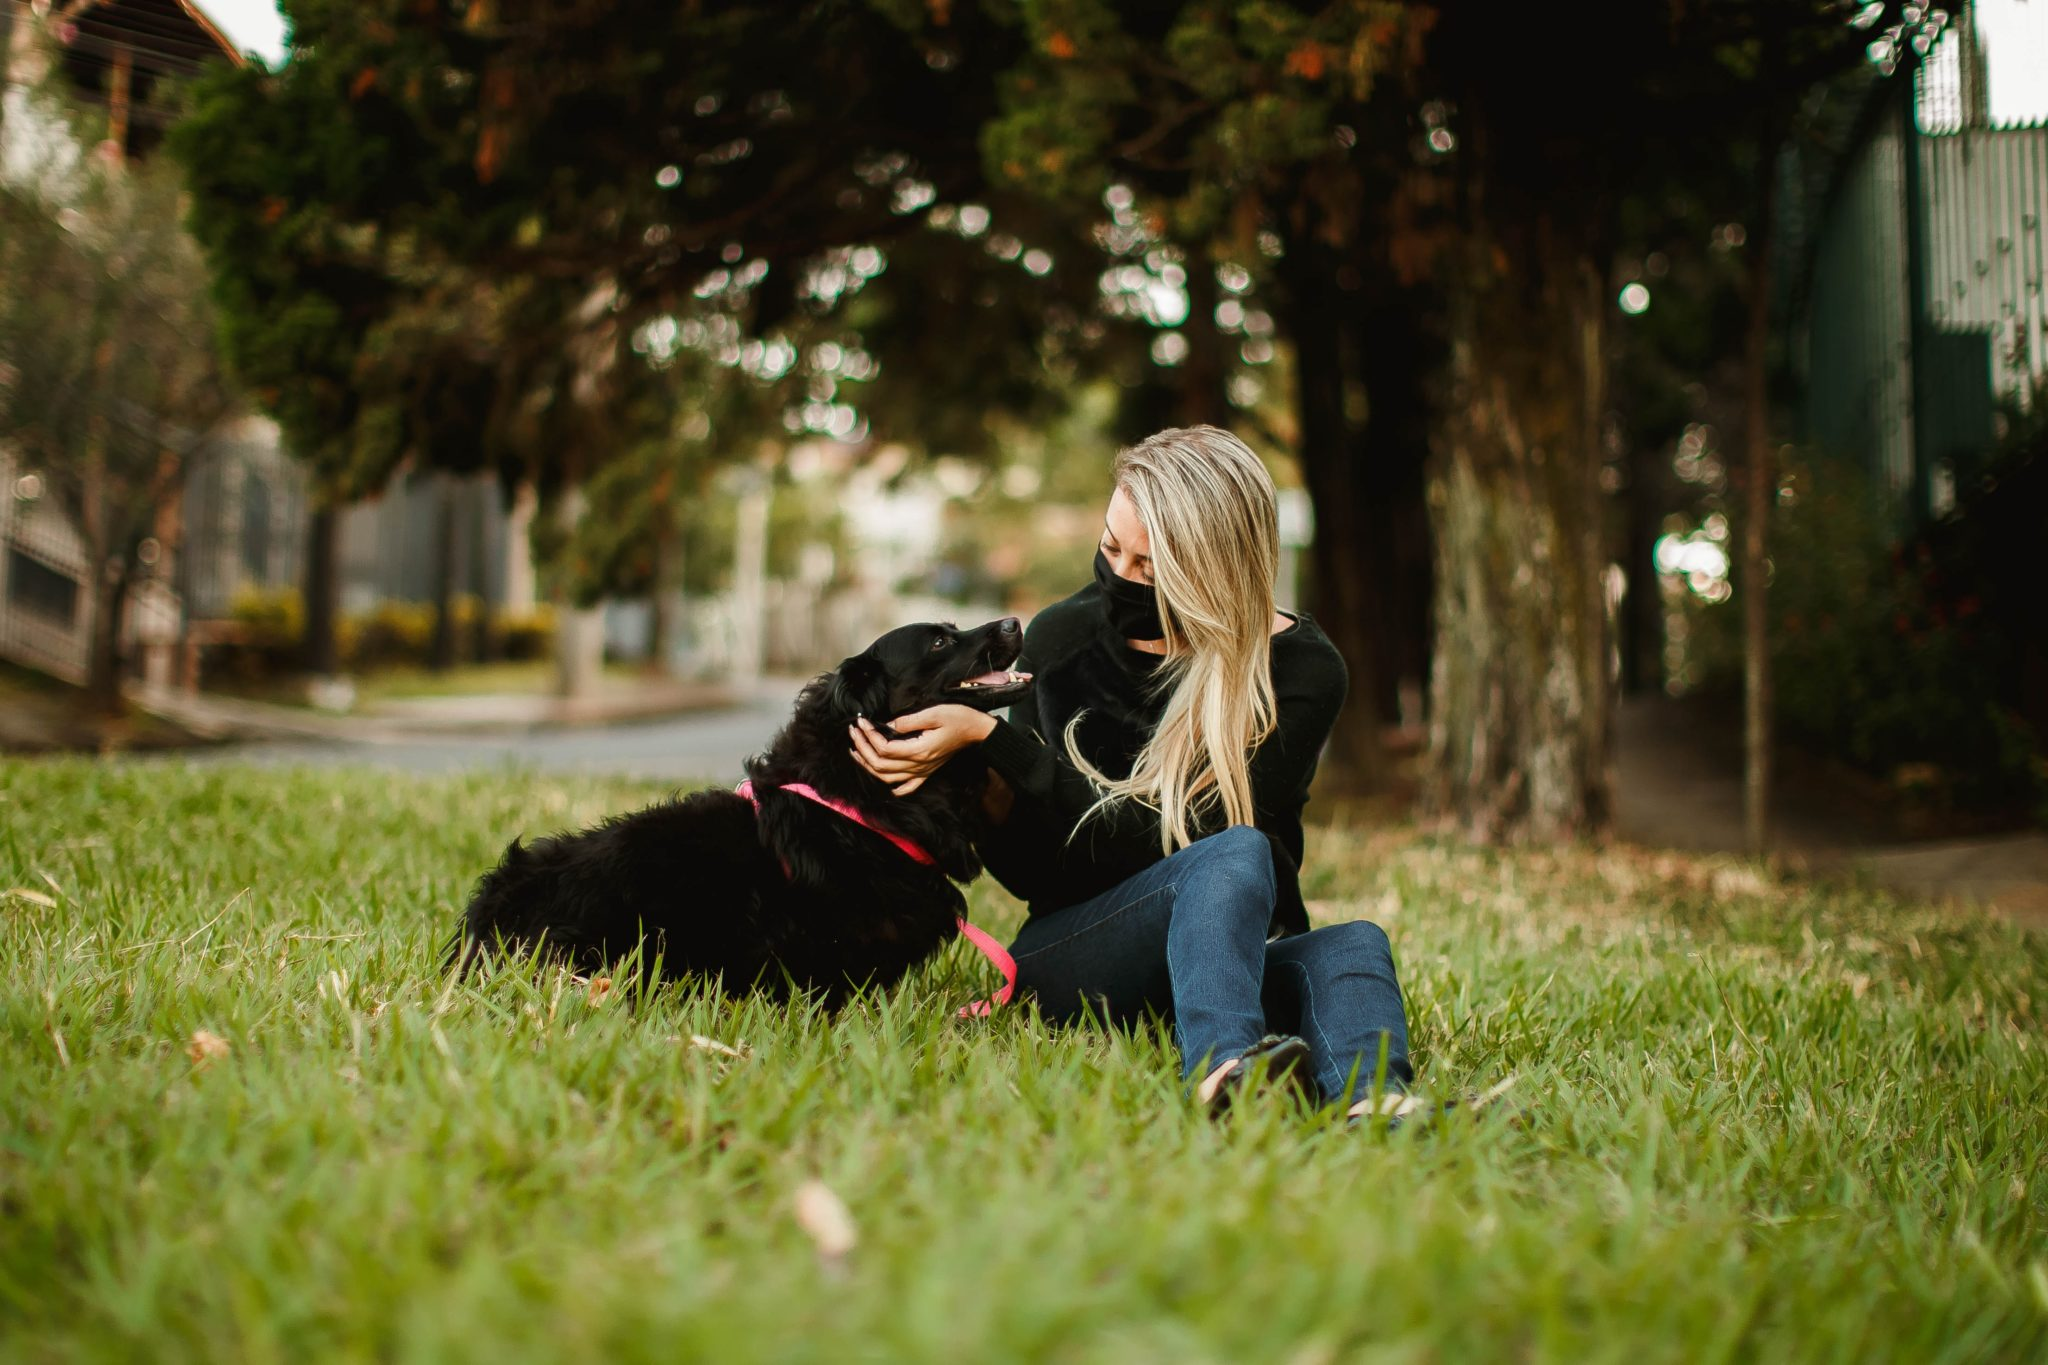 Masked woman playing with puppy in park